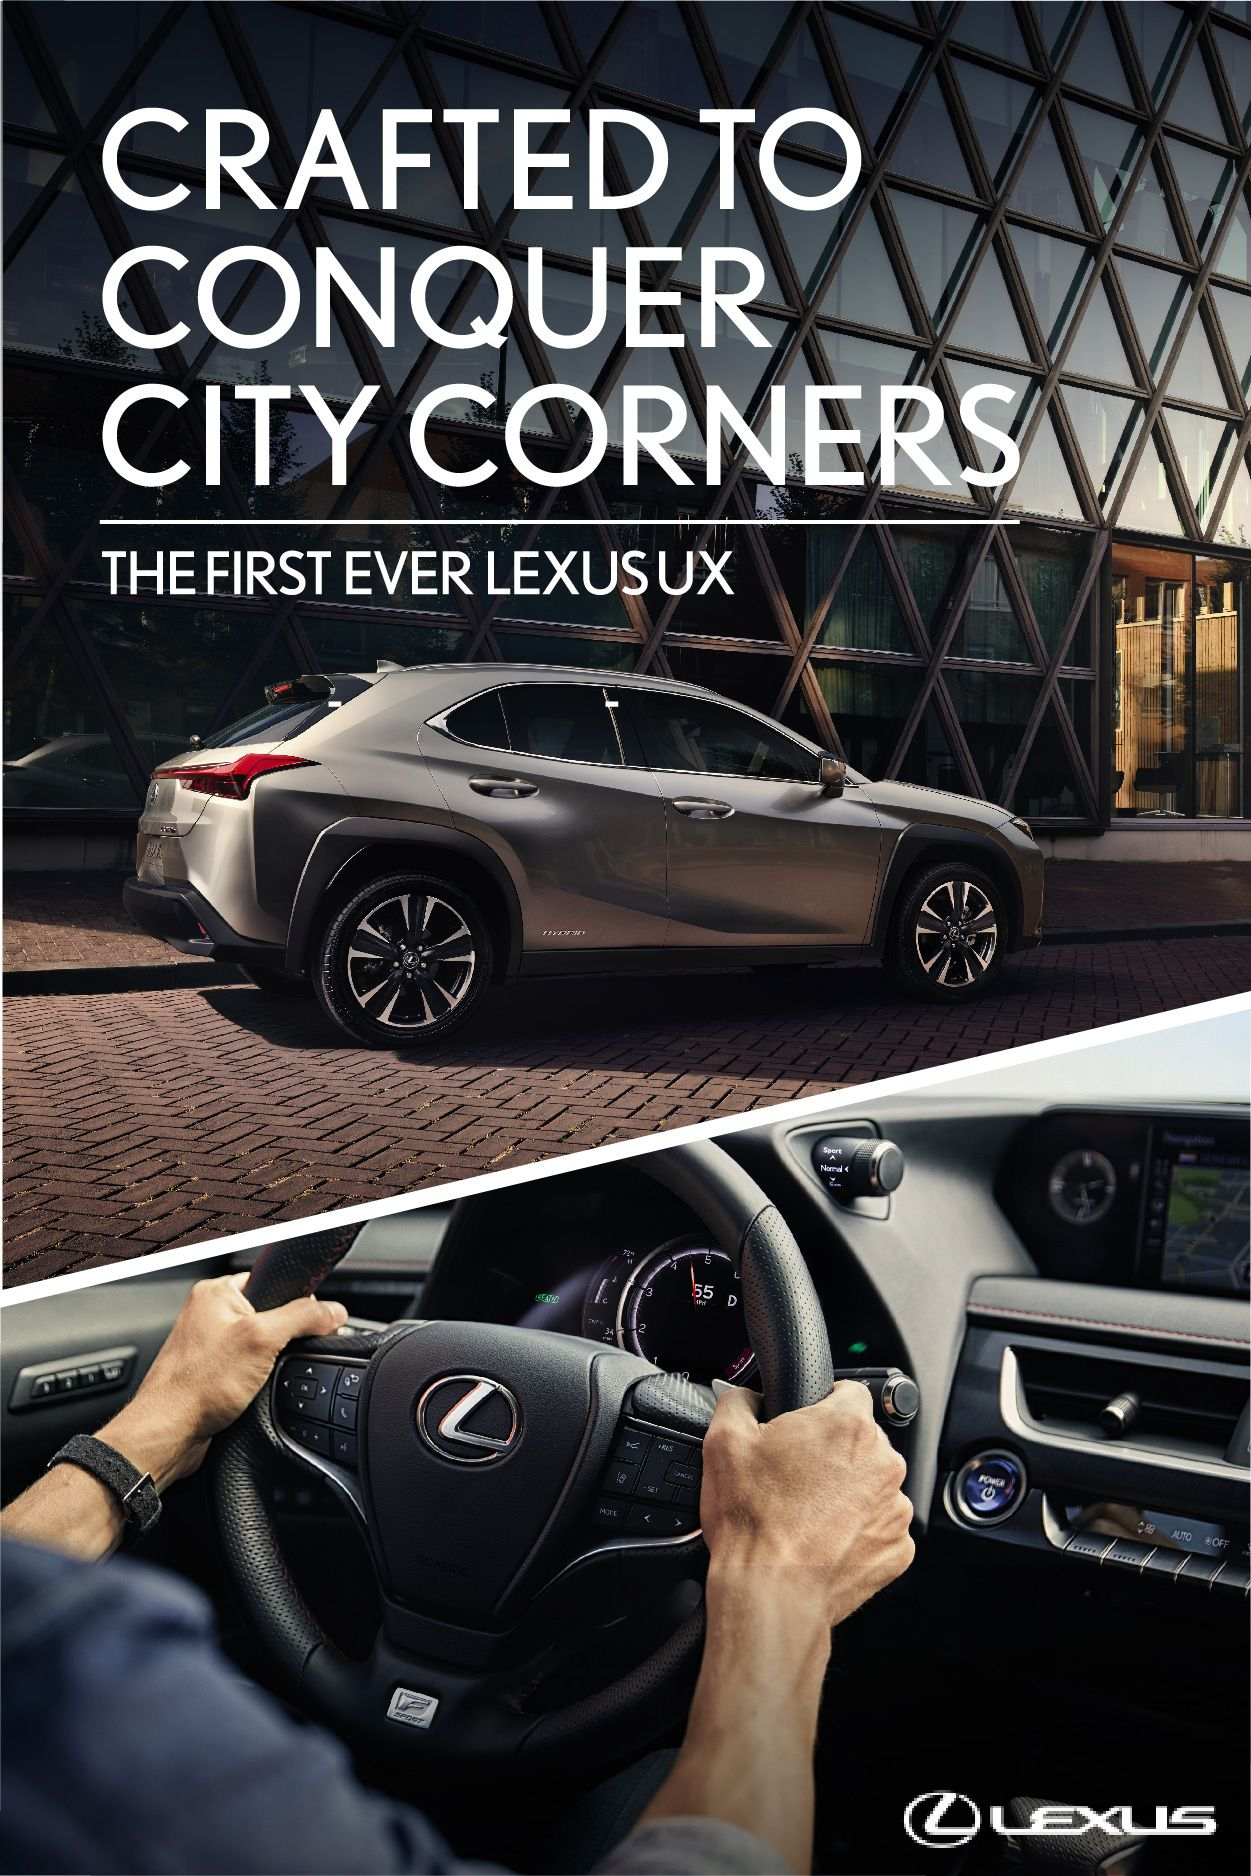 The First Ever Lexus Ux Crafted For Effortless Exploration Find Out More At Your Local Lexus Dealer Lexus Dealer Lexus My Ride